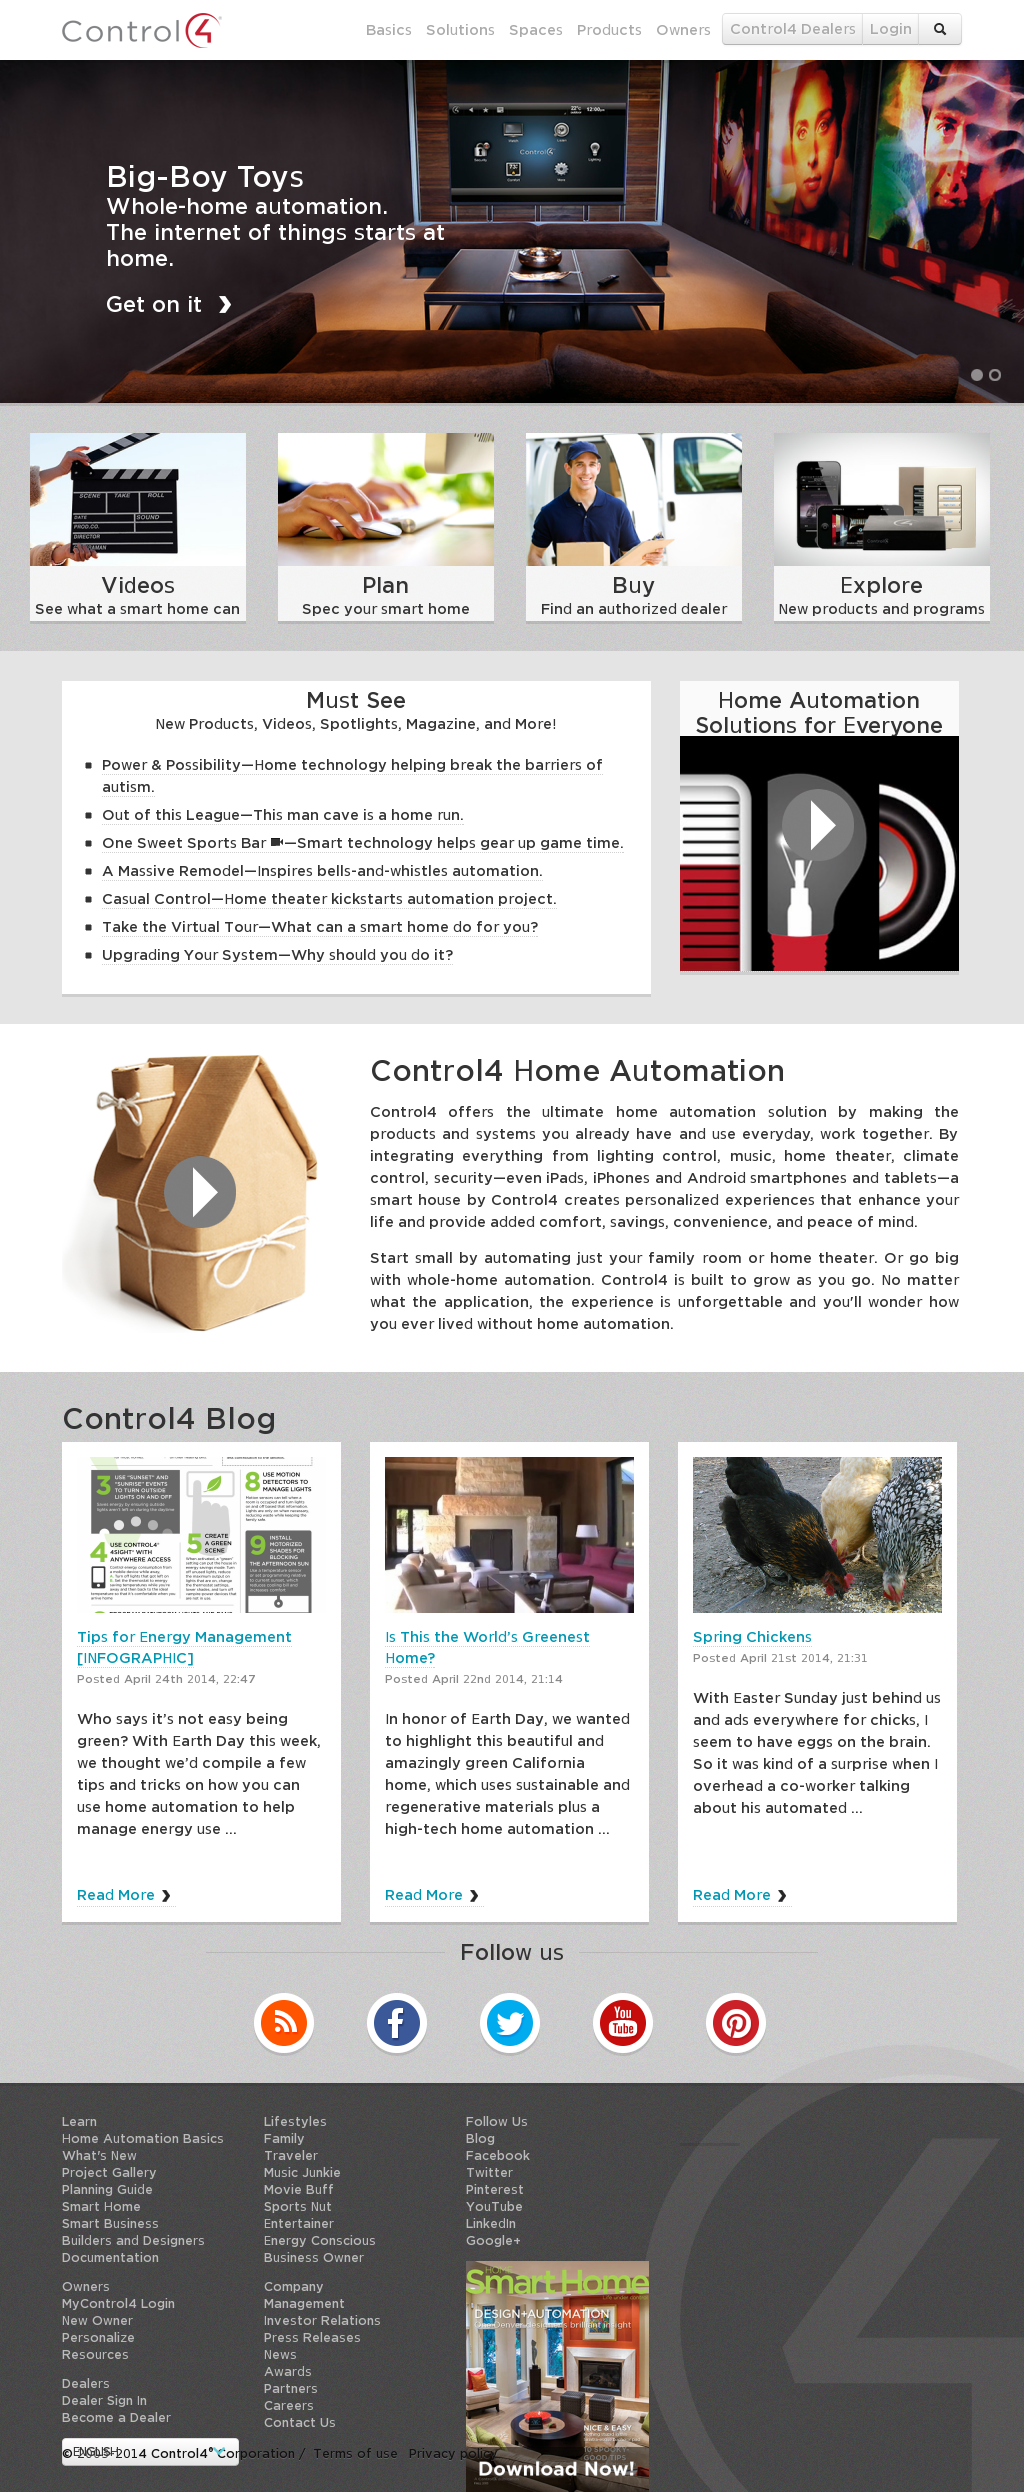 Control4 website history & Control4 Competitors Revenue and Employees - Company Profile on Owler